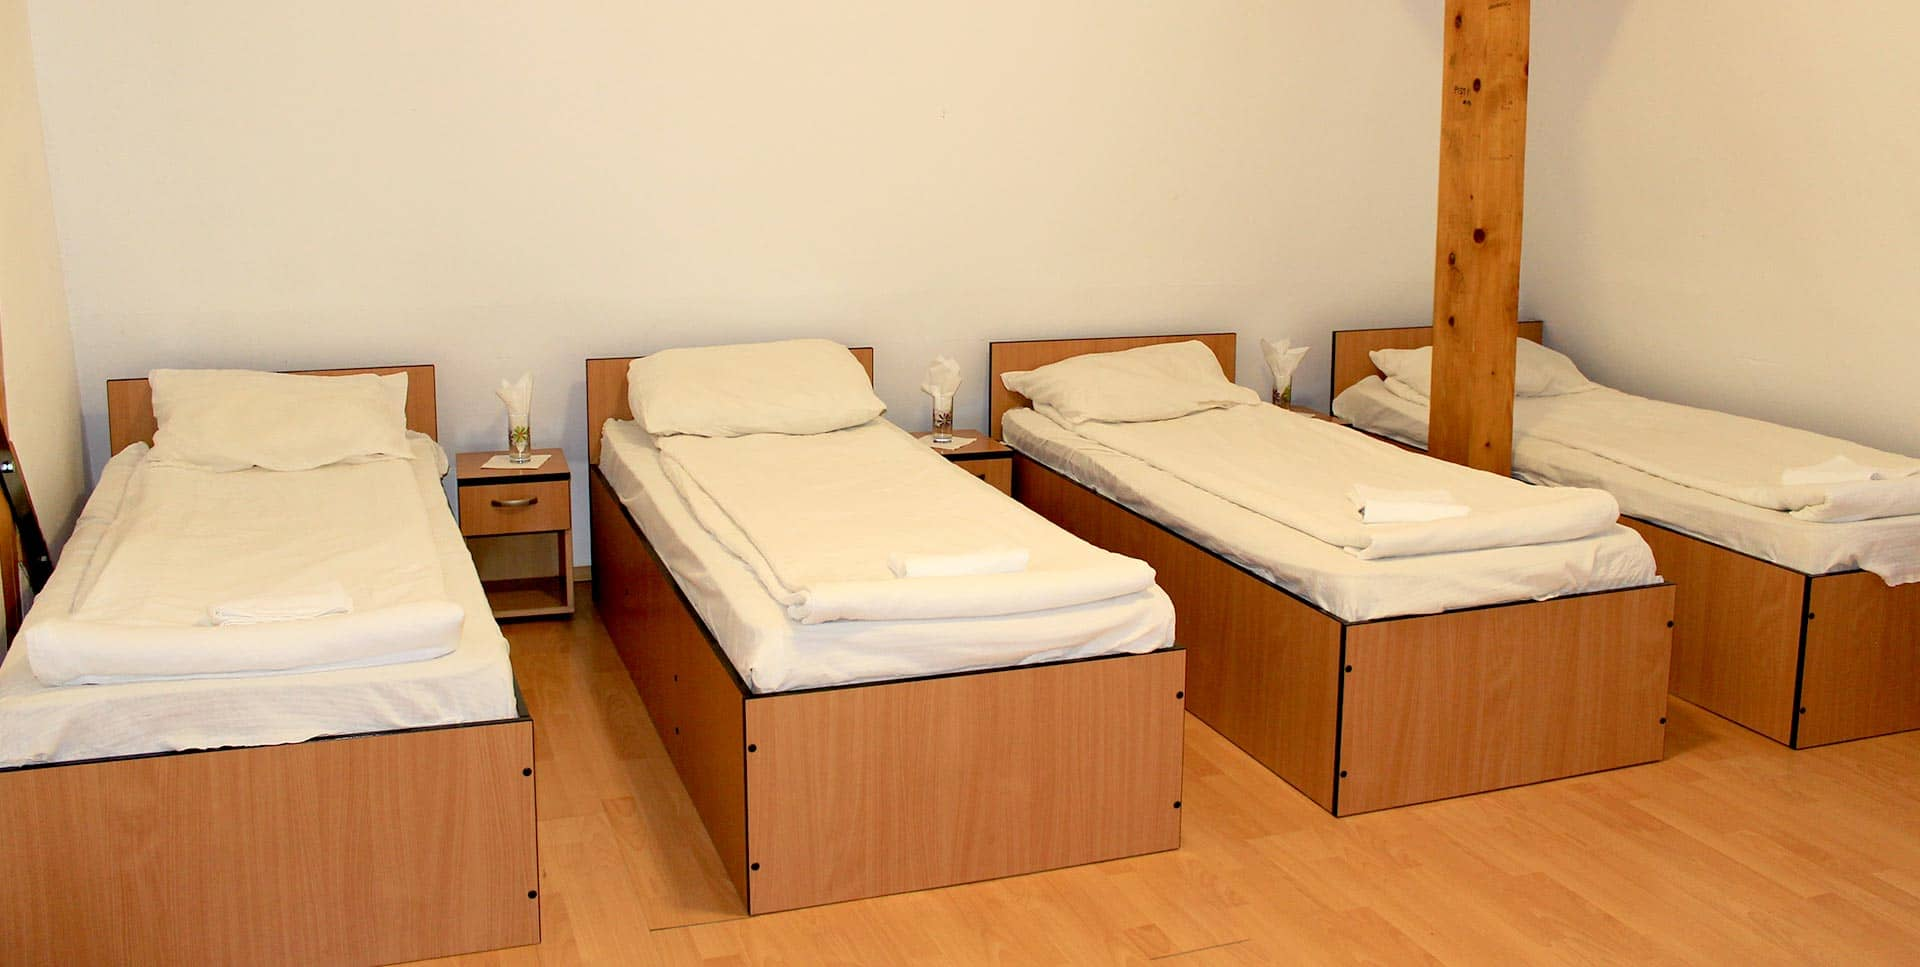 Rooms and Beds in Hostel Sport